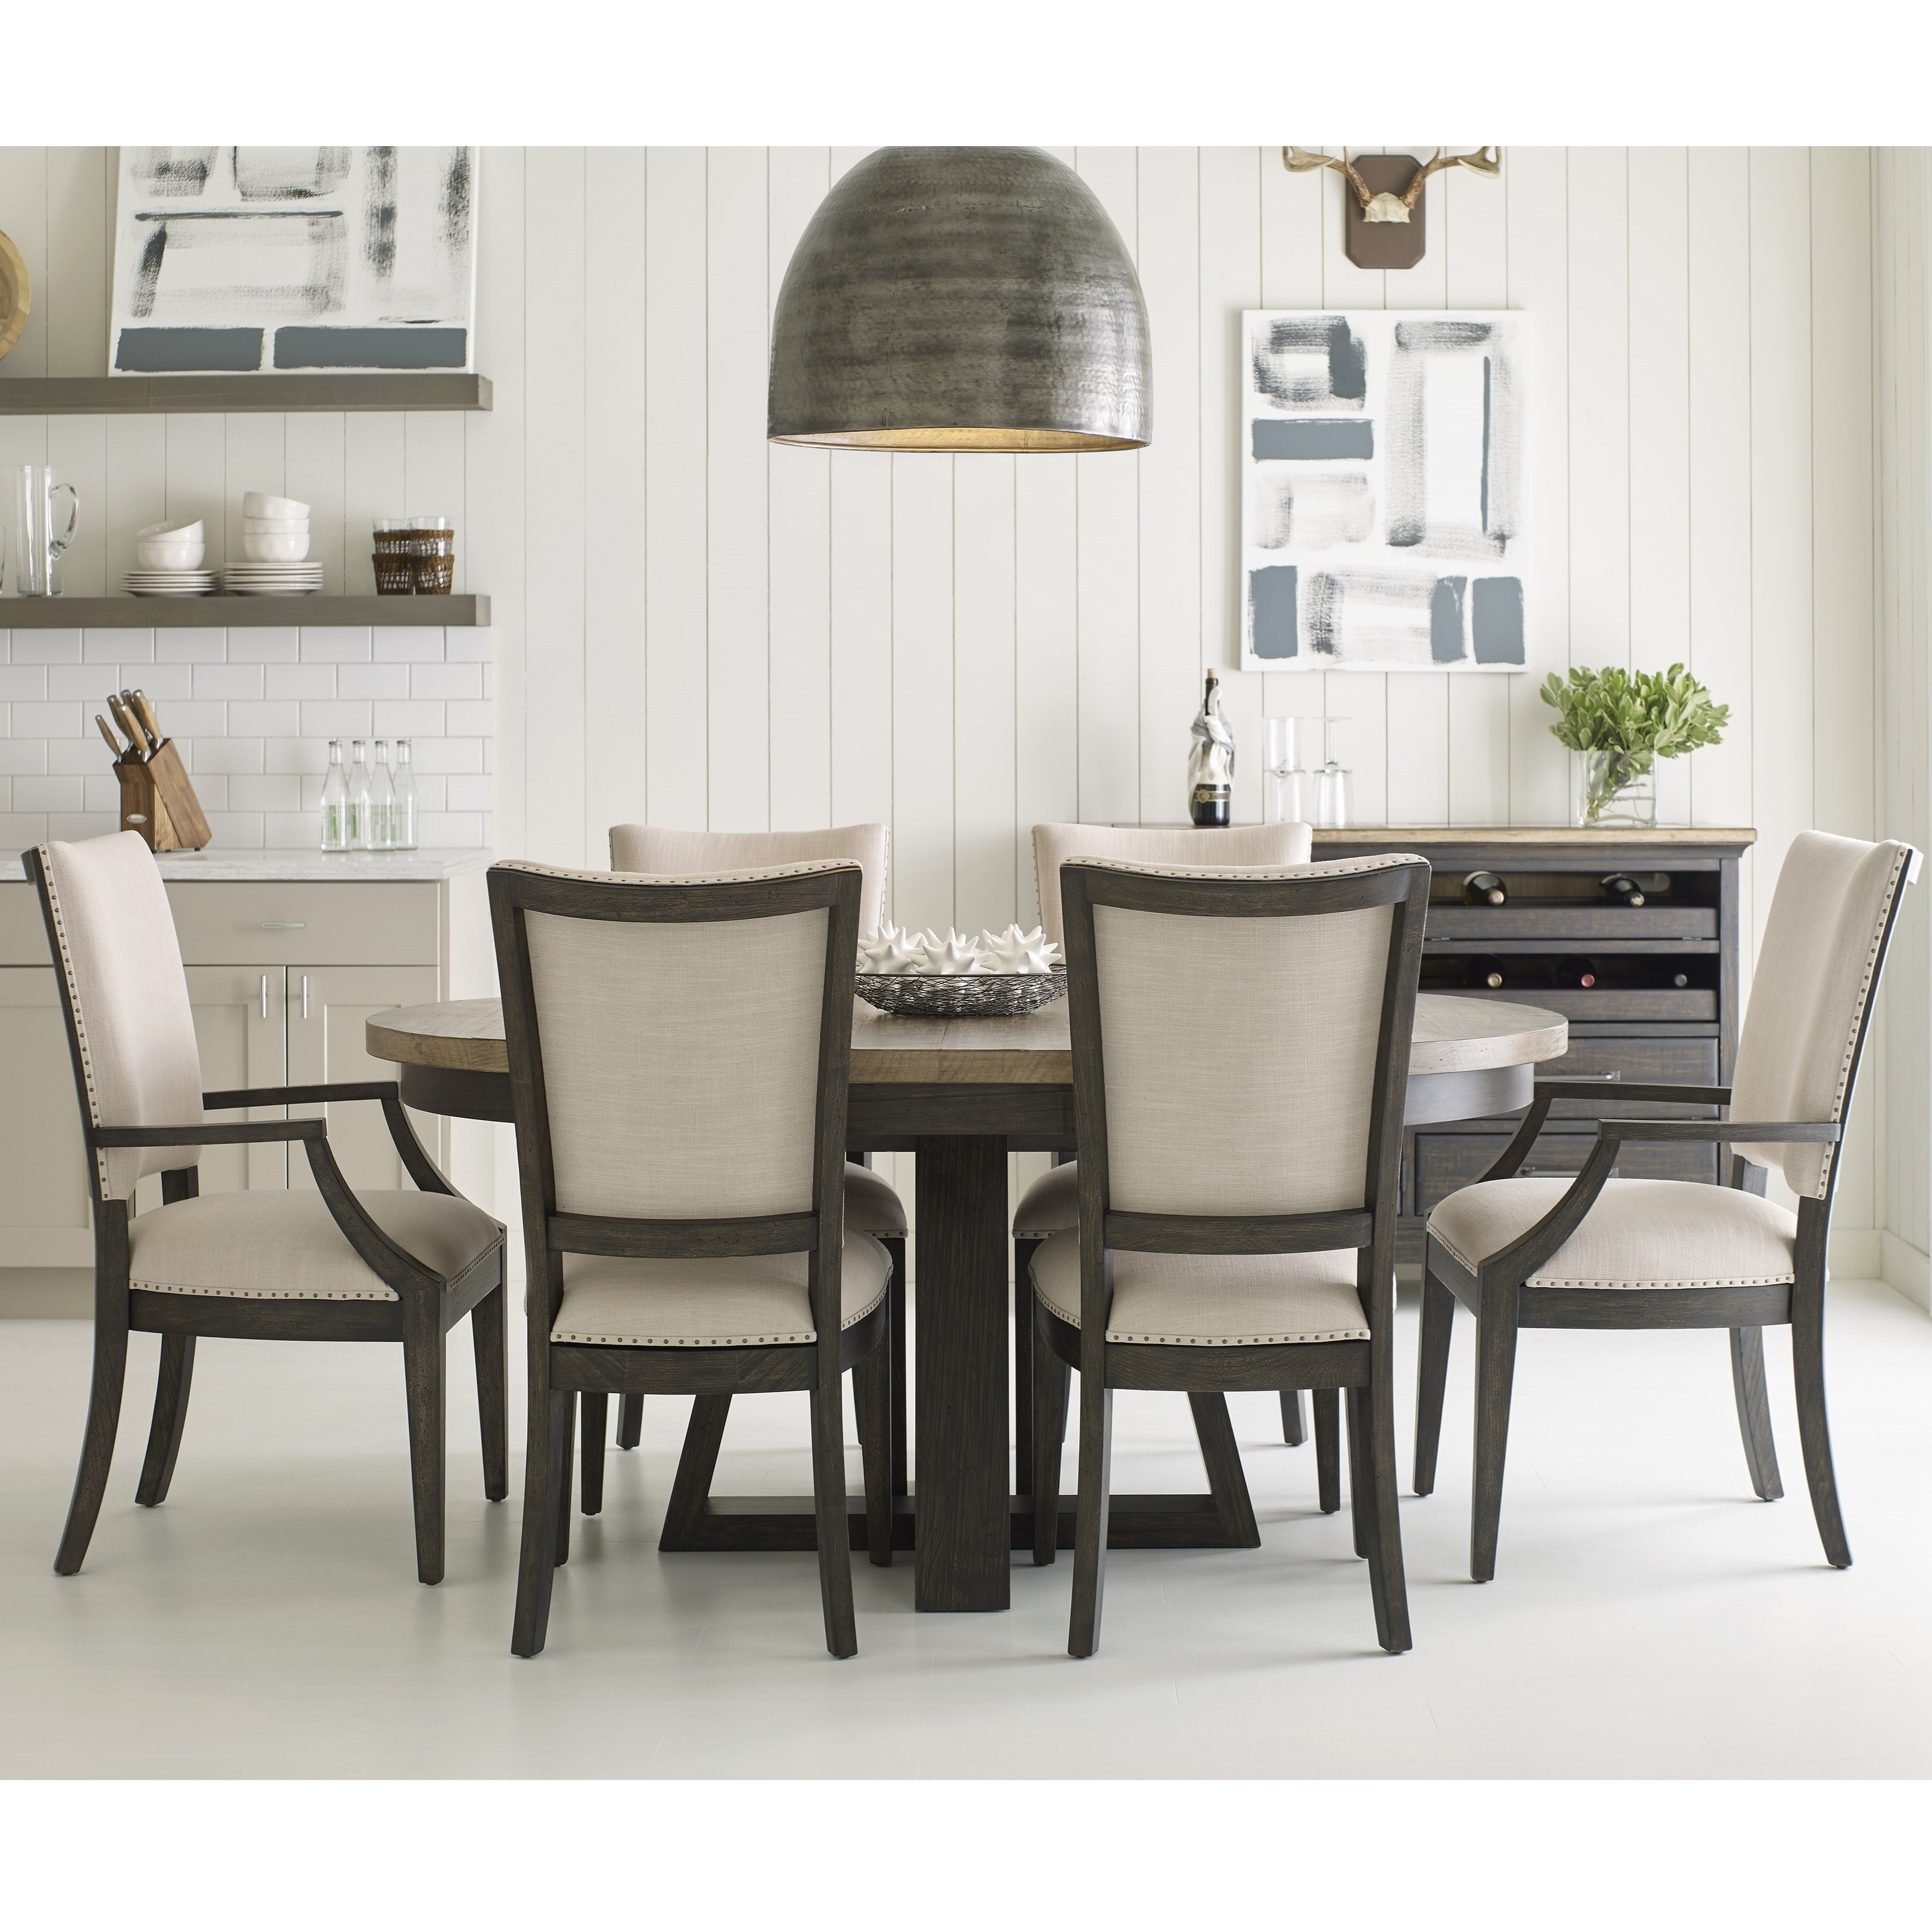 Plank Road 7 Pc Dining Set w/ Button Table by Kincaid Furniture at Northeast Factory Direct